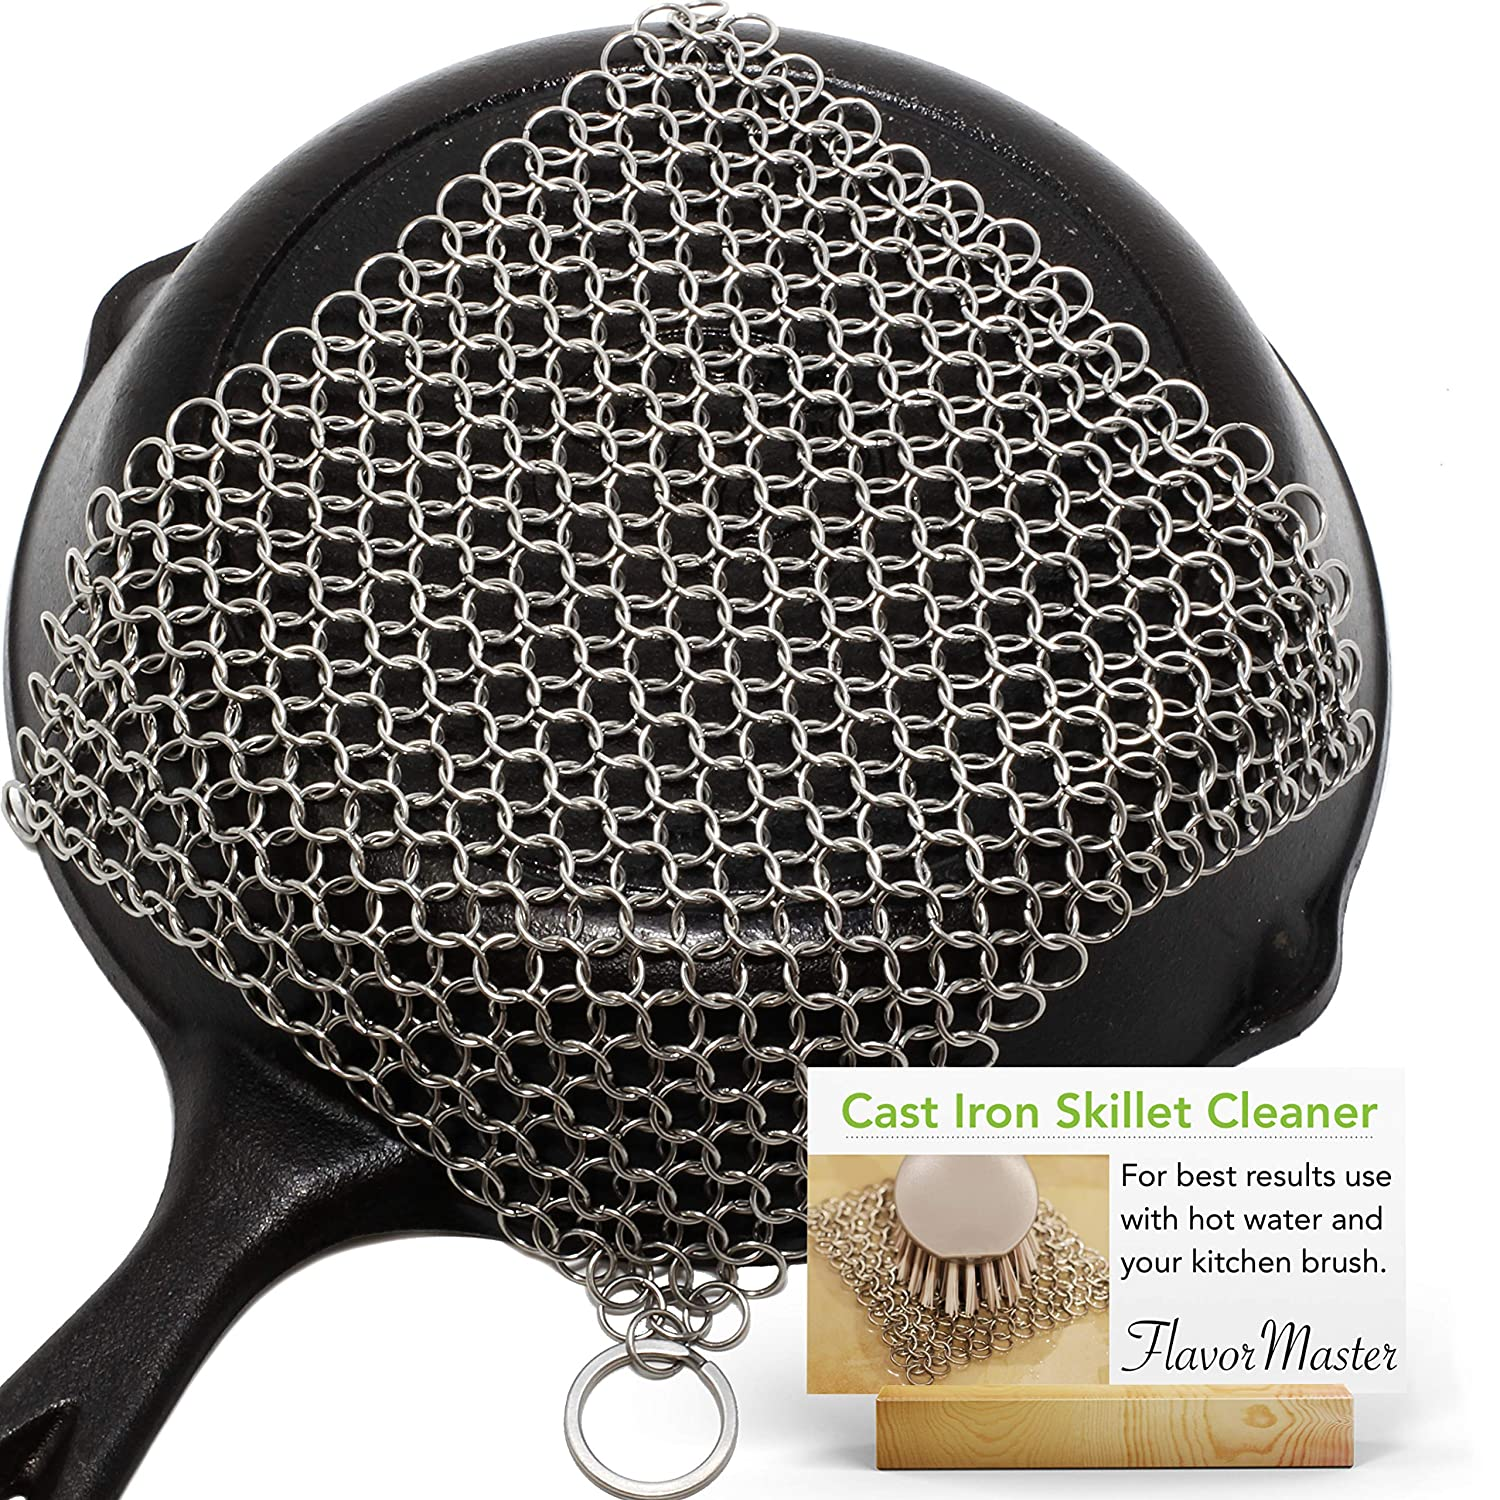 """FlavorMaster 8""""x6"""" Cast Iron Skillet Cleaner 316L Stainless Steel Chainmail Scrubber for Cast Iron Pans Maintains Seasoning Leaves Cast Iron Cleaner"""